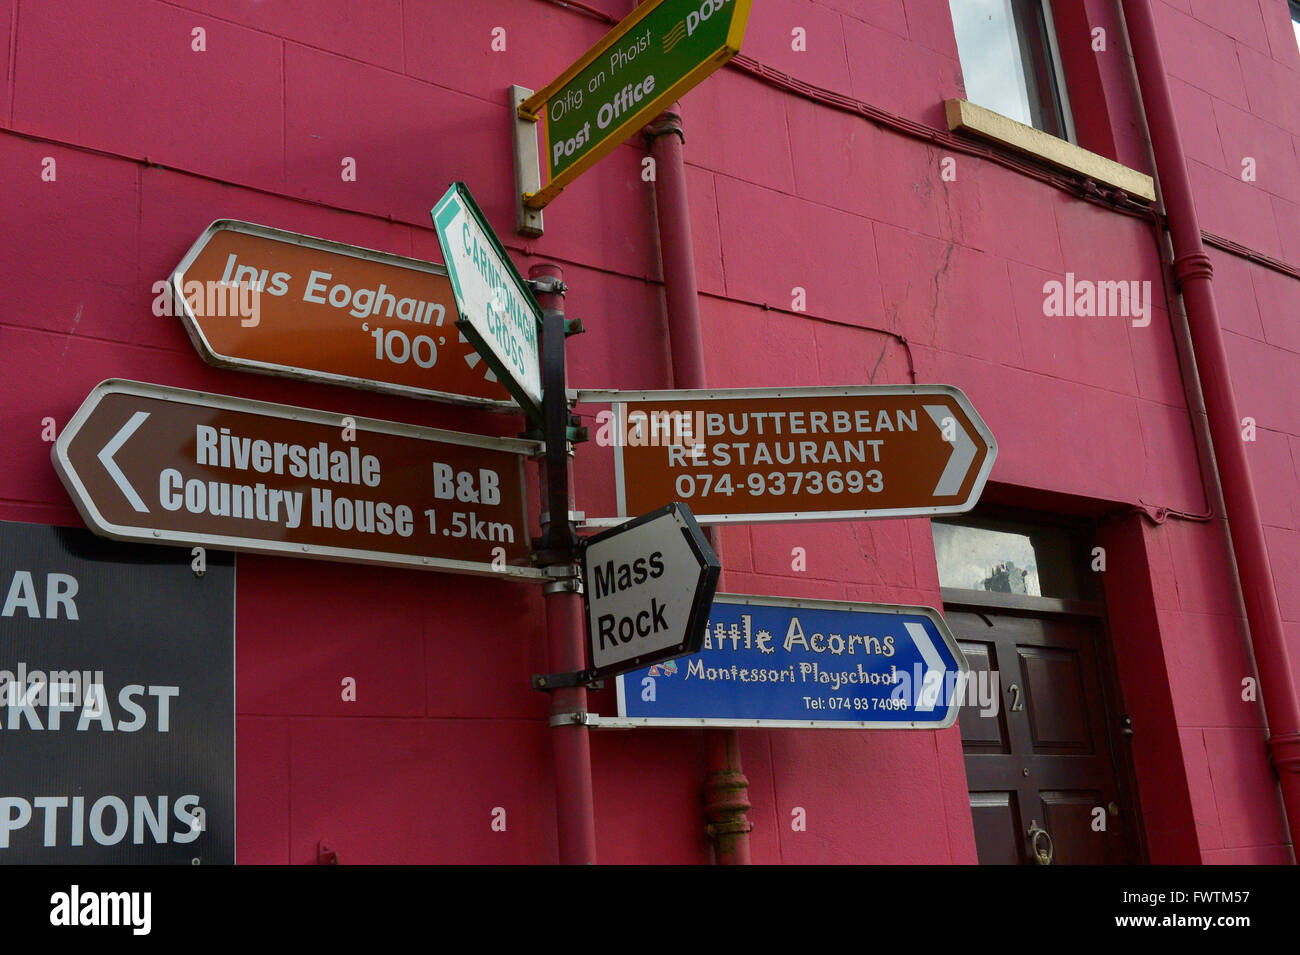 Various signs in Carndonagh, Inishowen, County Donegal, Ireland. - Stock Image